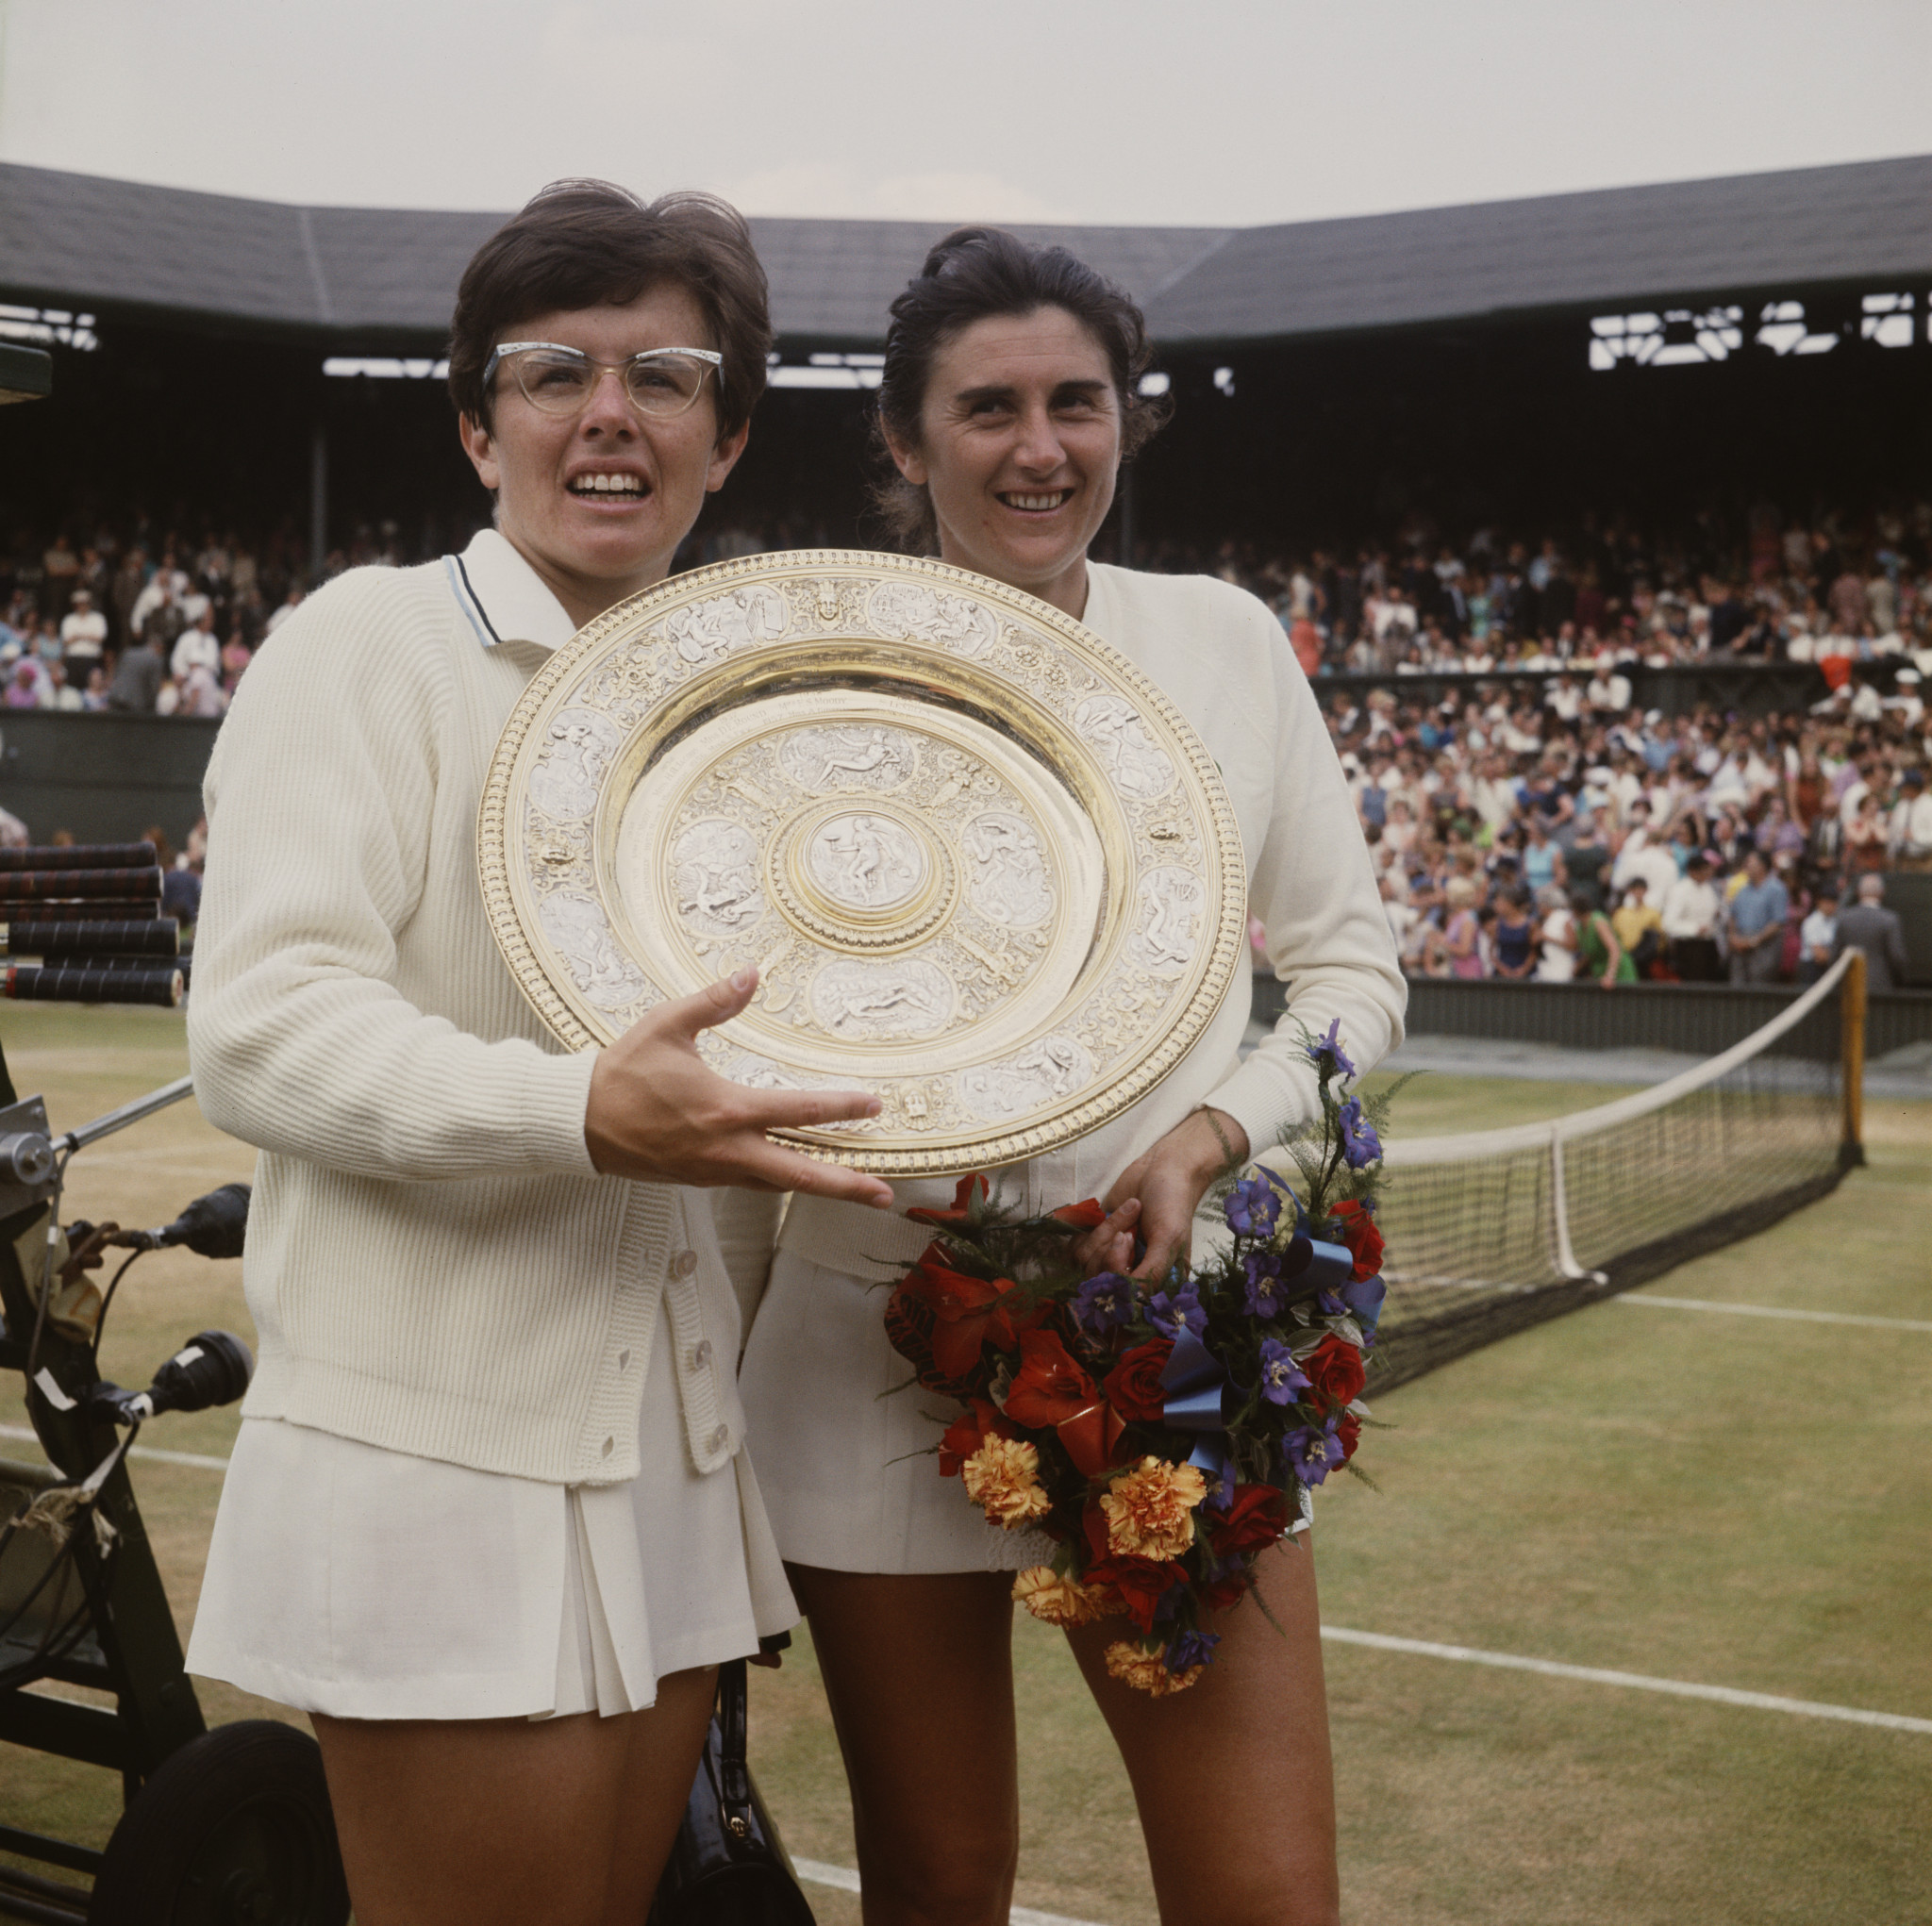 Billie Jean King won the first women's final of the open era at the 1968 Wimbledon Championships, beating Australia's Judy Tegart 9-7, 7-5 in the final ©Getty Images